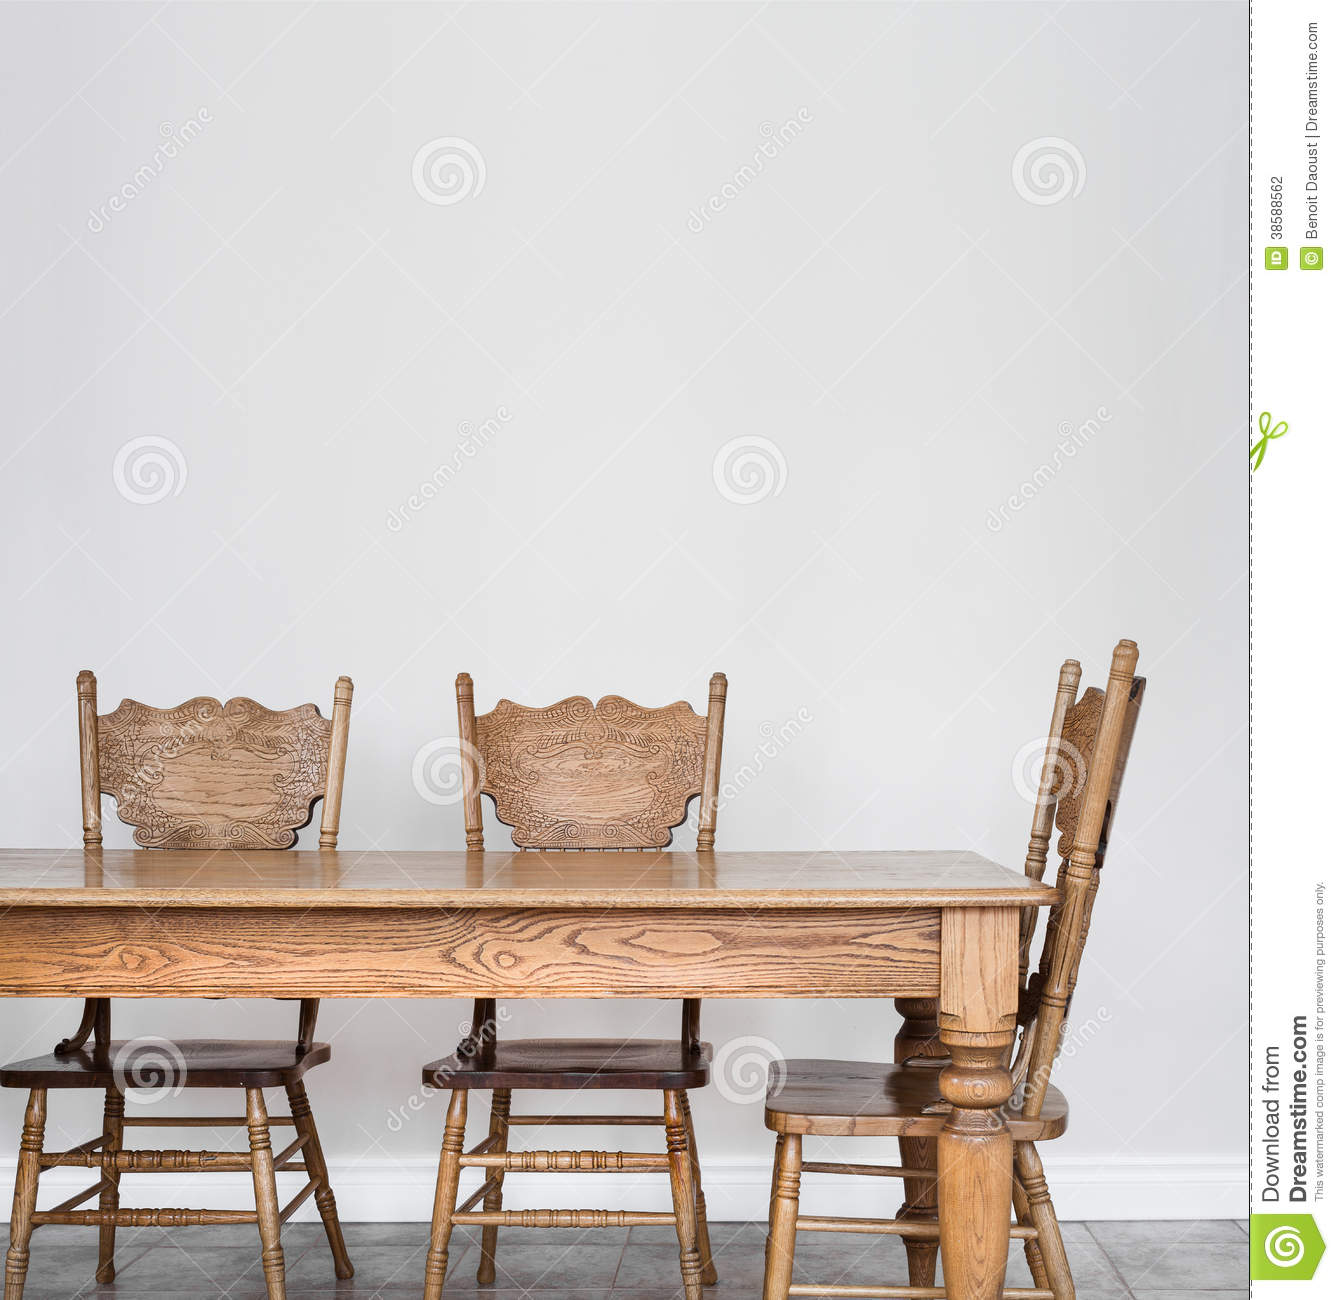 Wooden Dining Room Table And Chair Details Stock